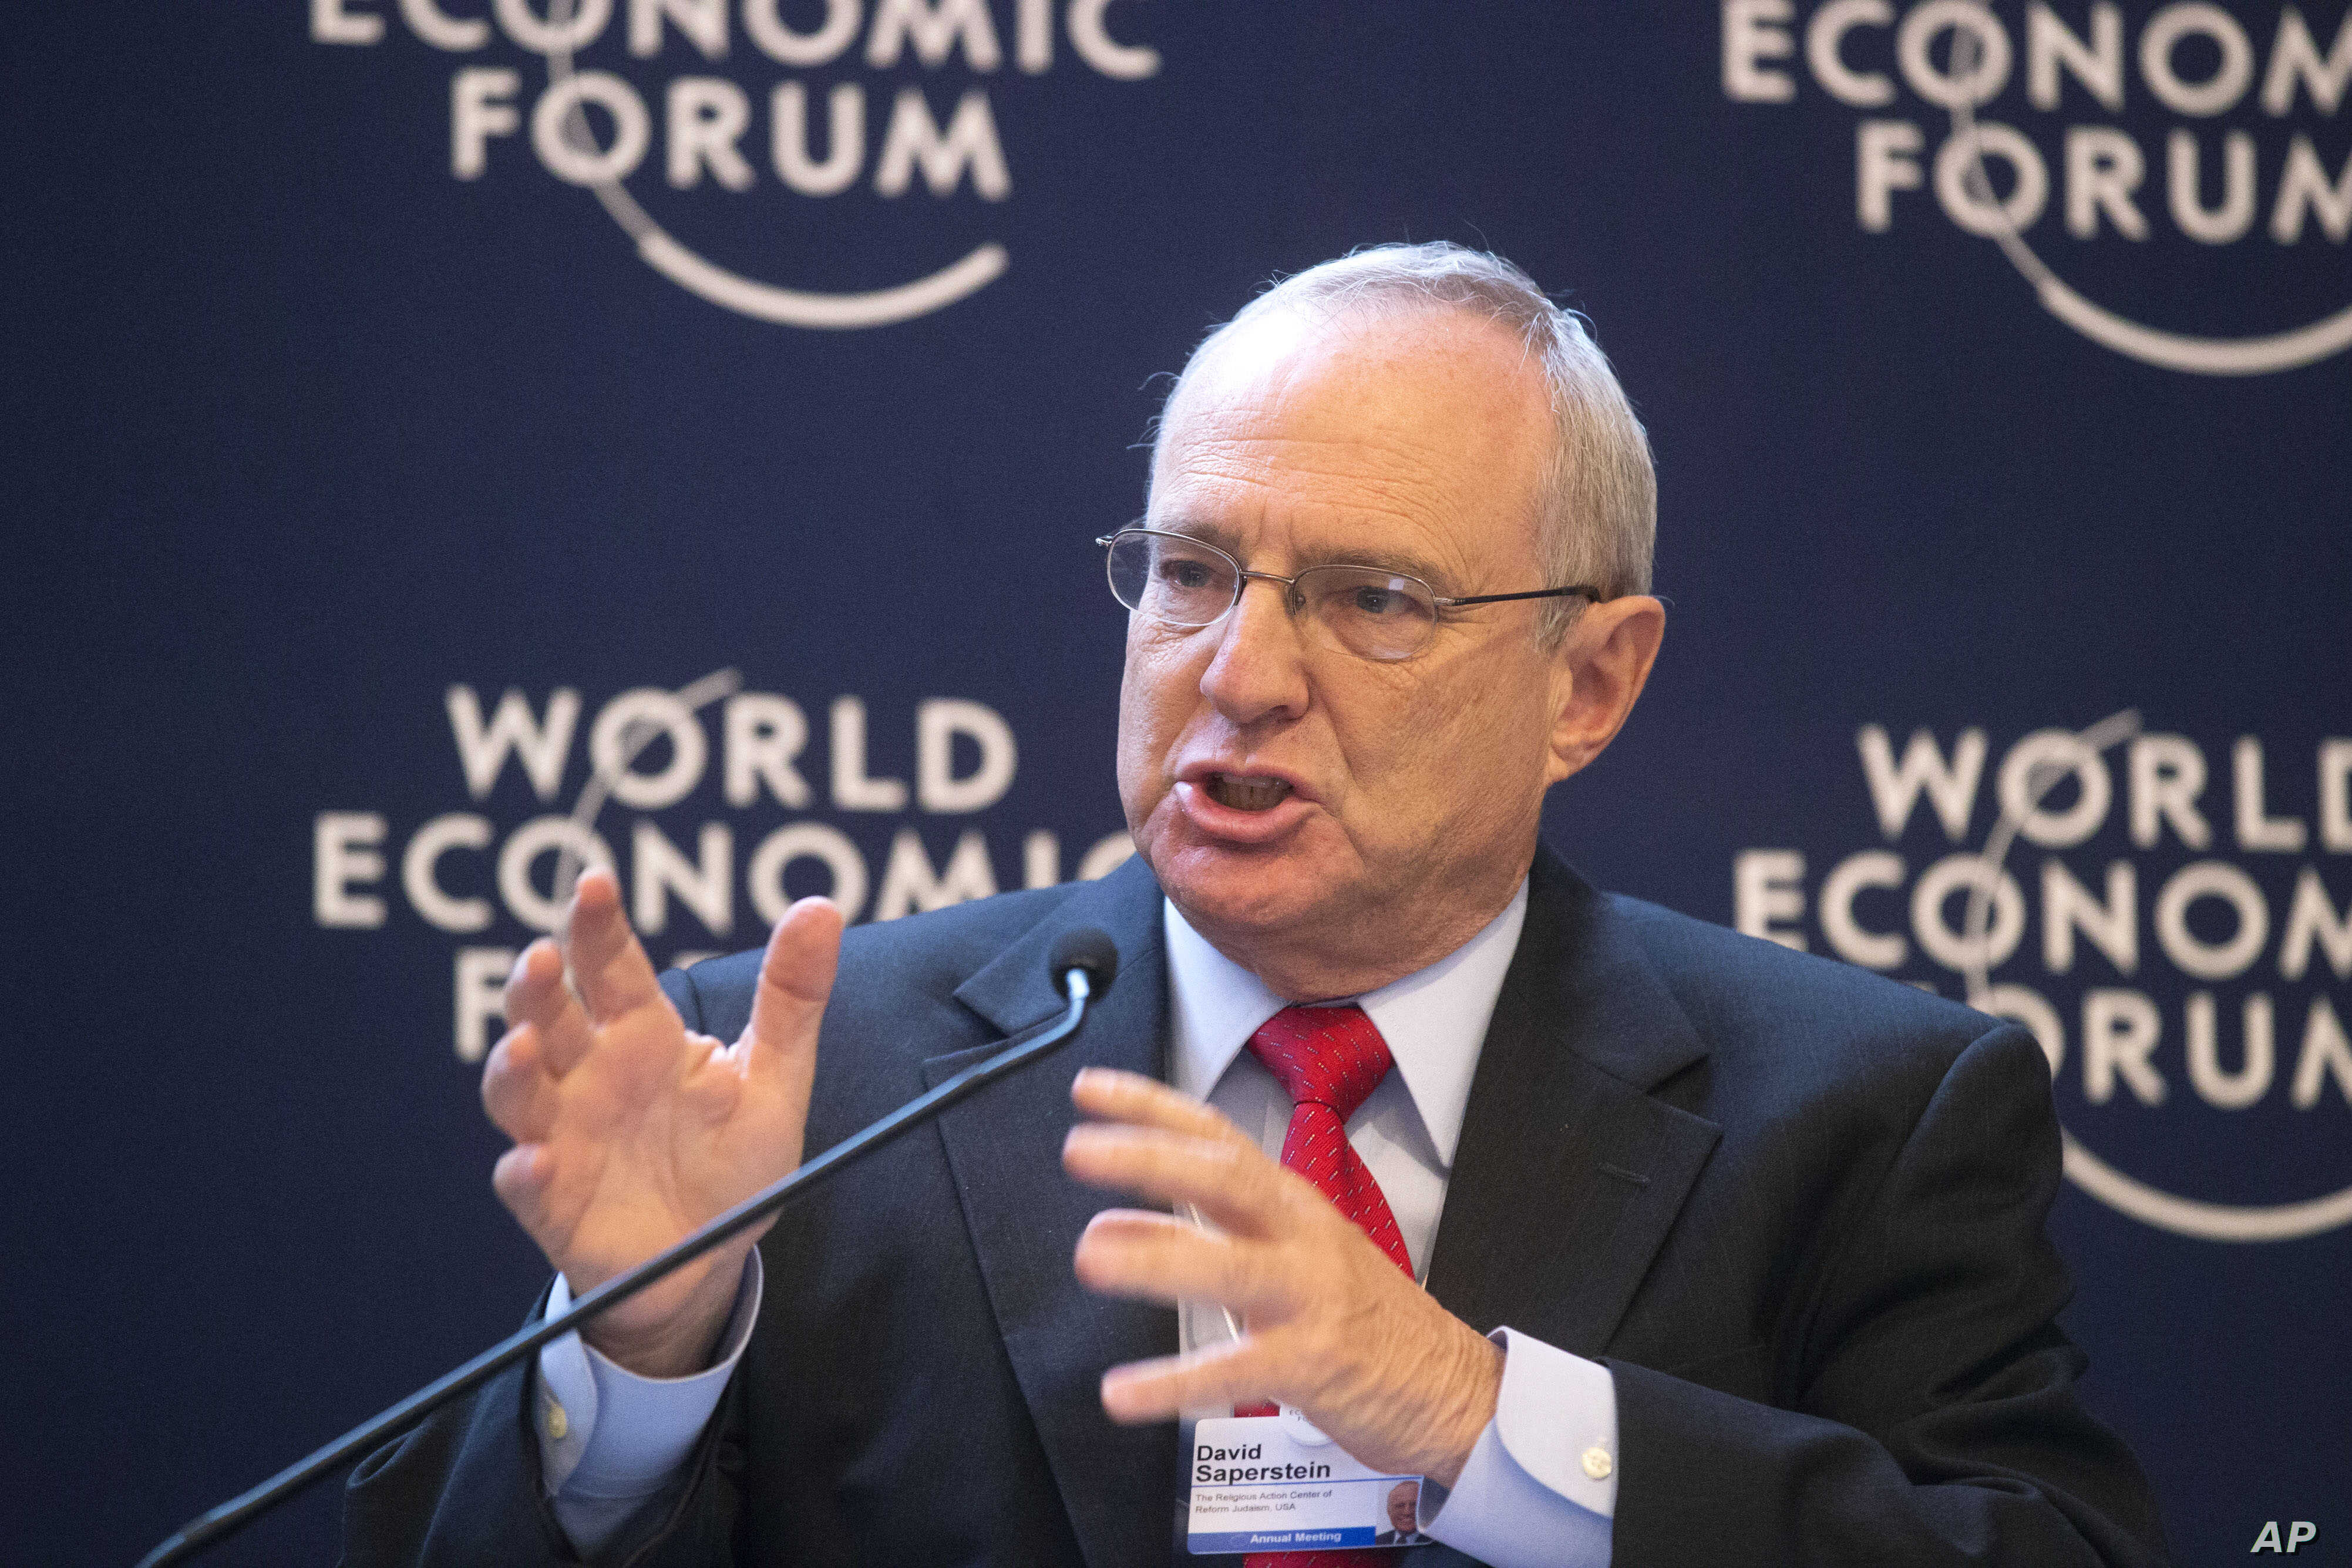 David Saperstein,  director of the Union for Reform Judaism's Religious Action Center gestures as he speaks during a debate on religion at the 43rd Annual Meeting of the World Economic Forum (WEF) in Davos, Switzerland, Jan. 25, 2013.